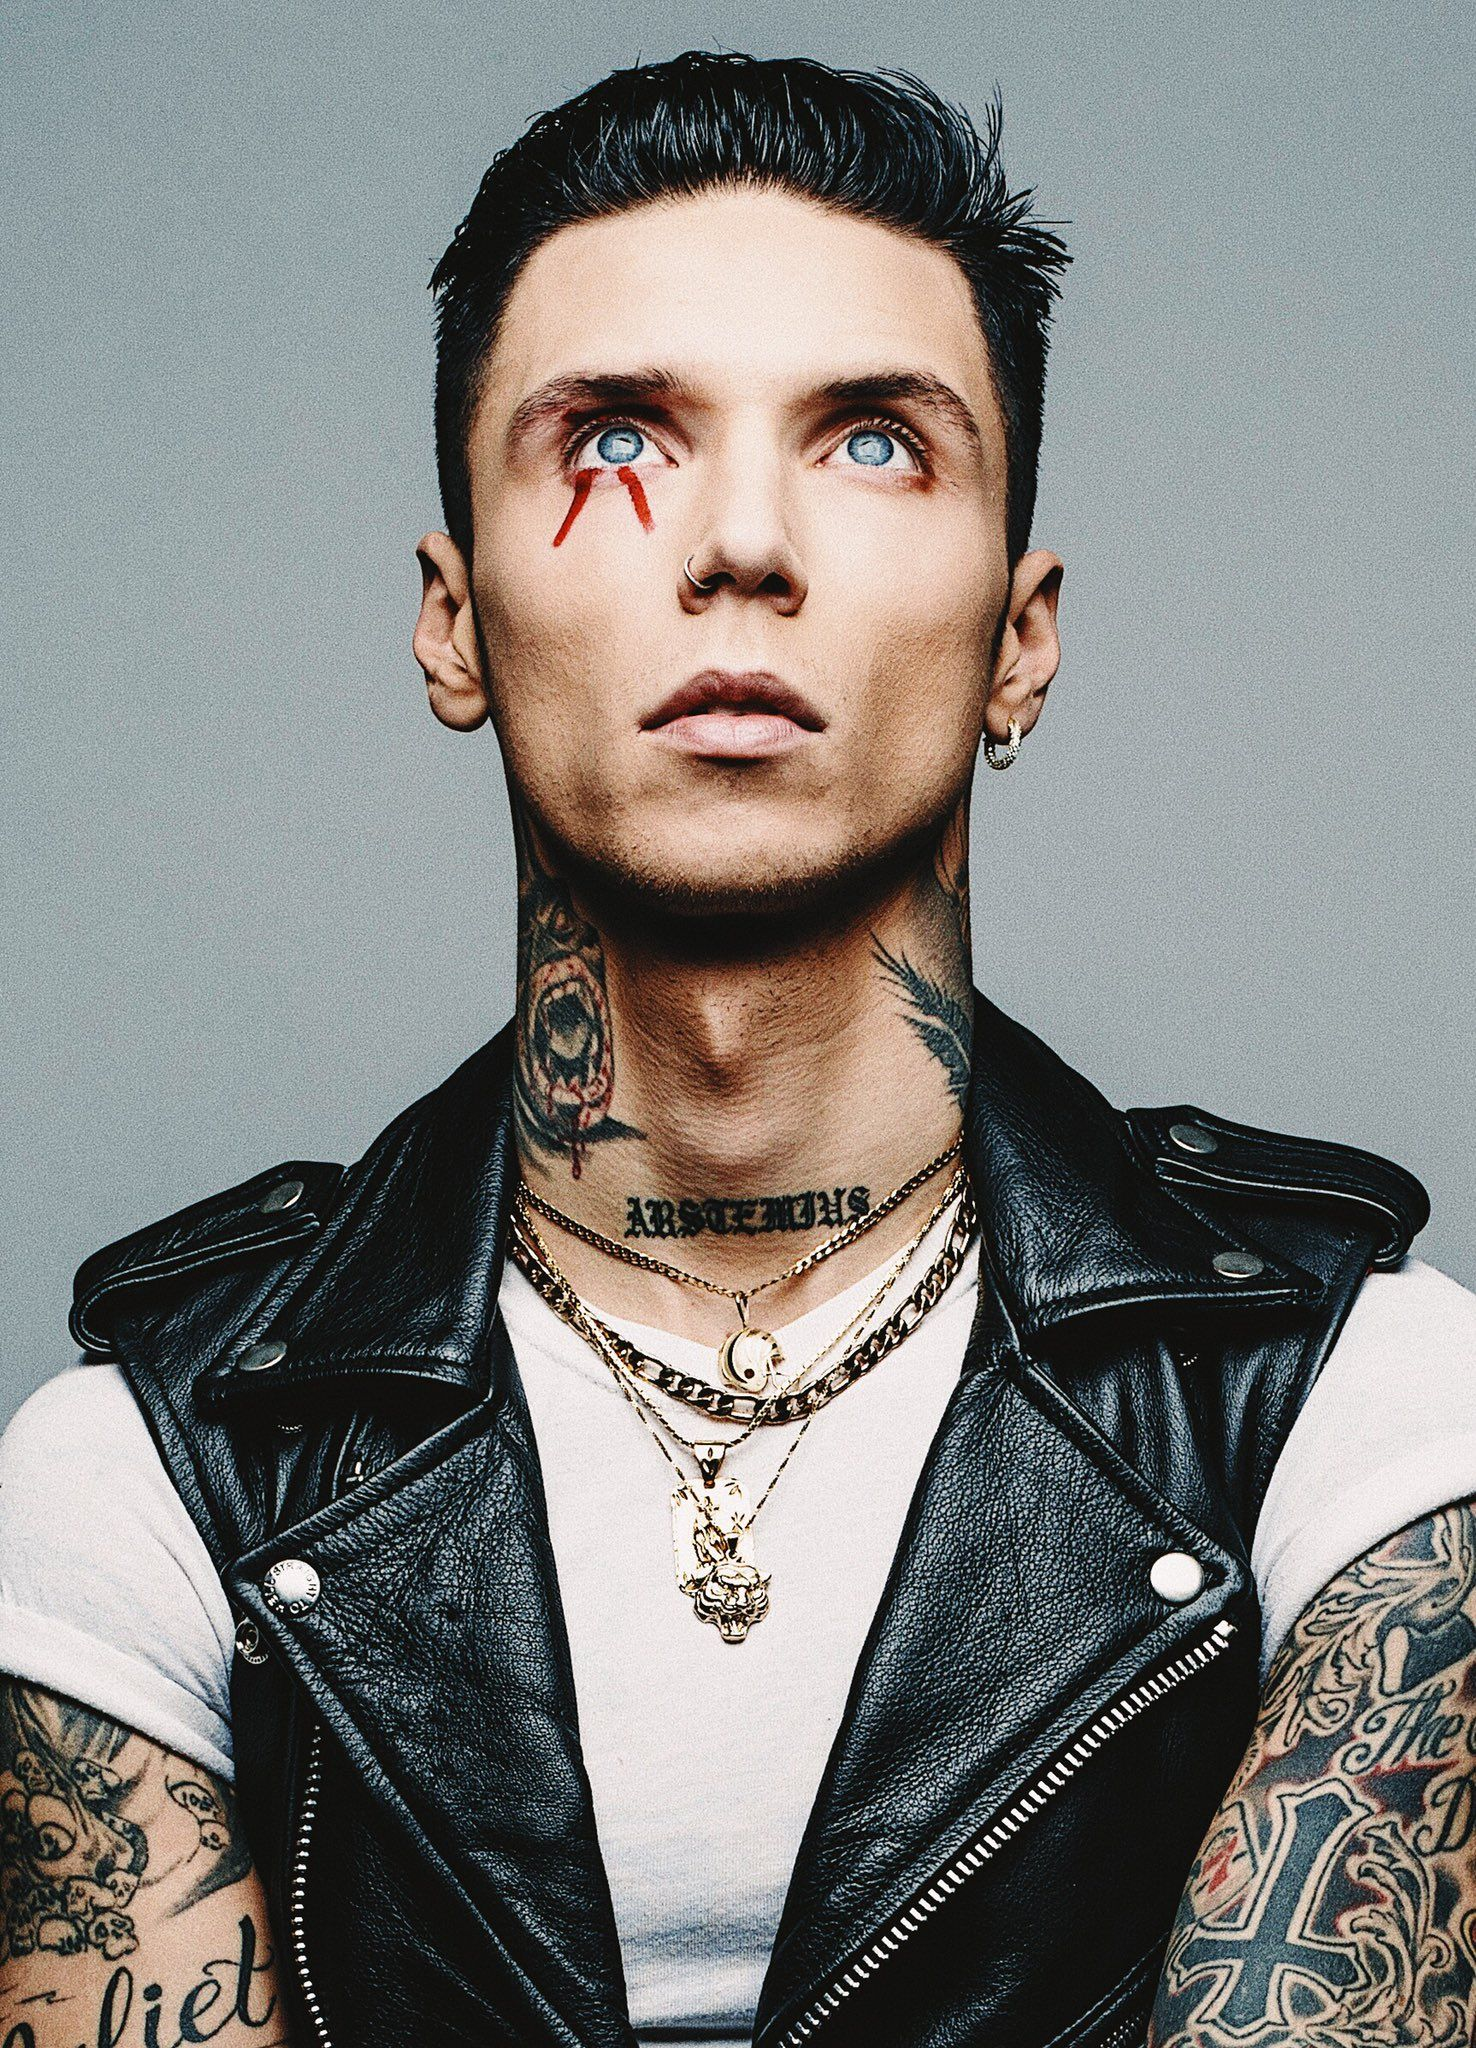 Andy Biersack on (With images) | Black veil brides andy ...